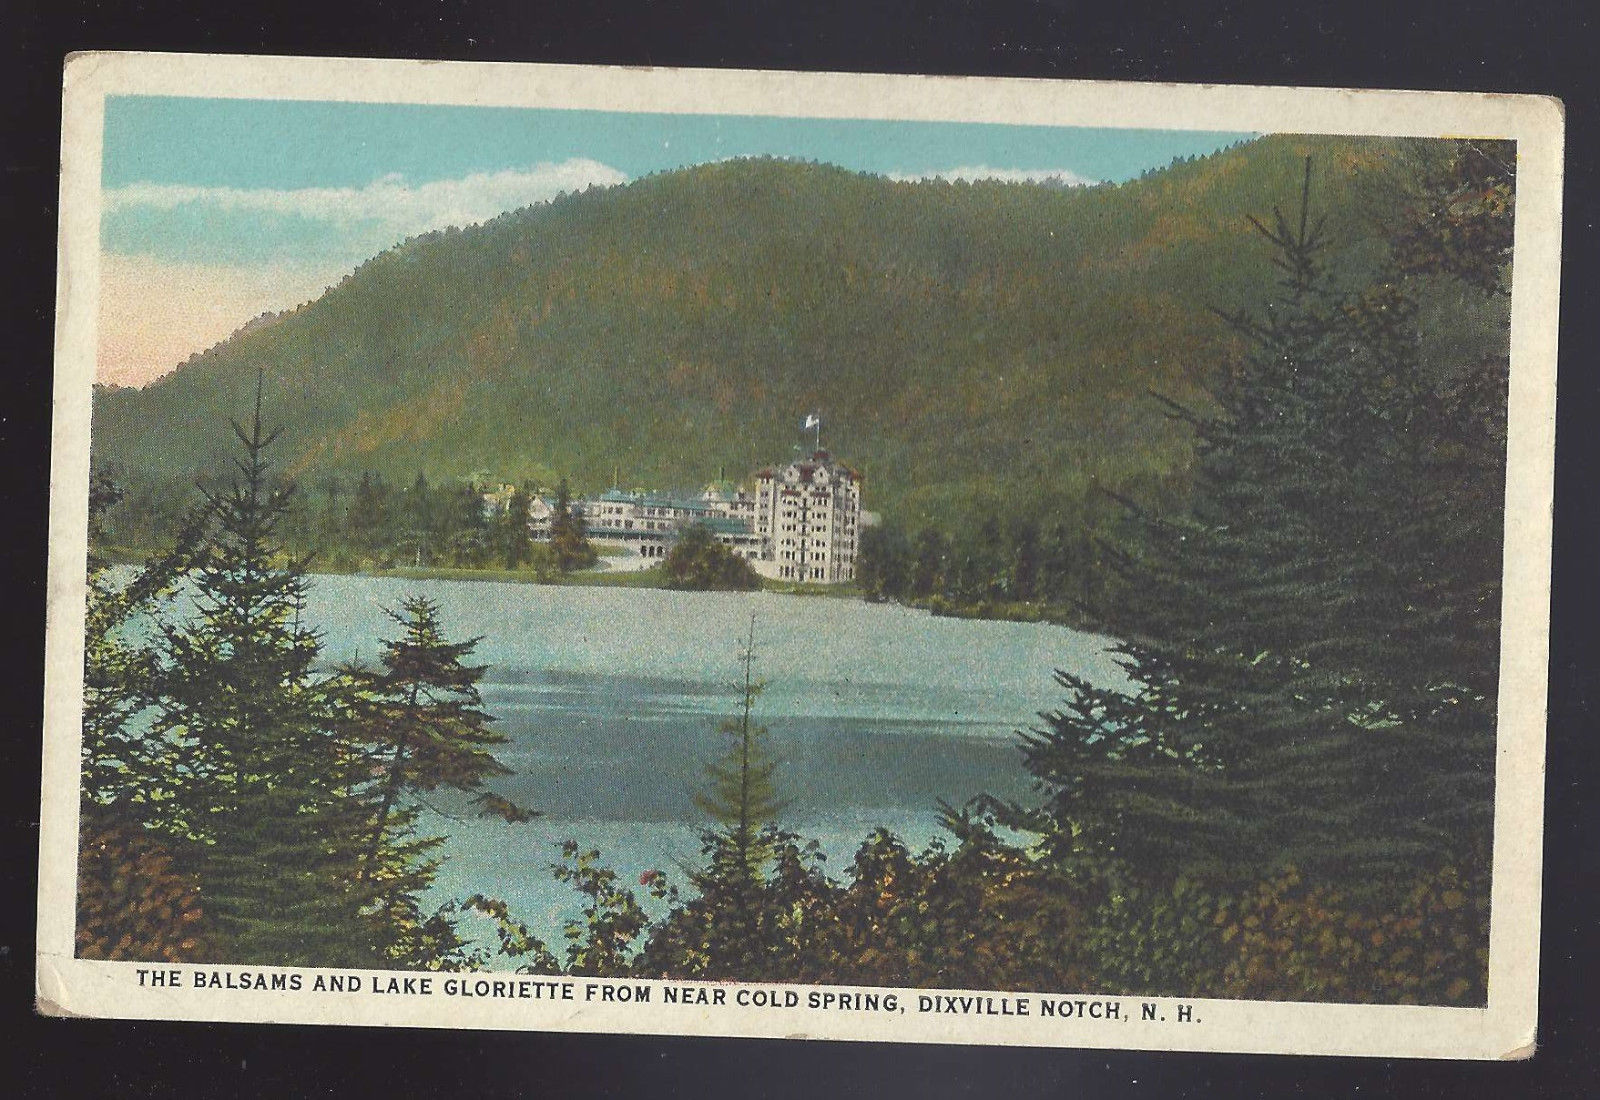 NH Dixville Notch Lake Gloriette and The Balsams from Cold Springs Vtg Postcard